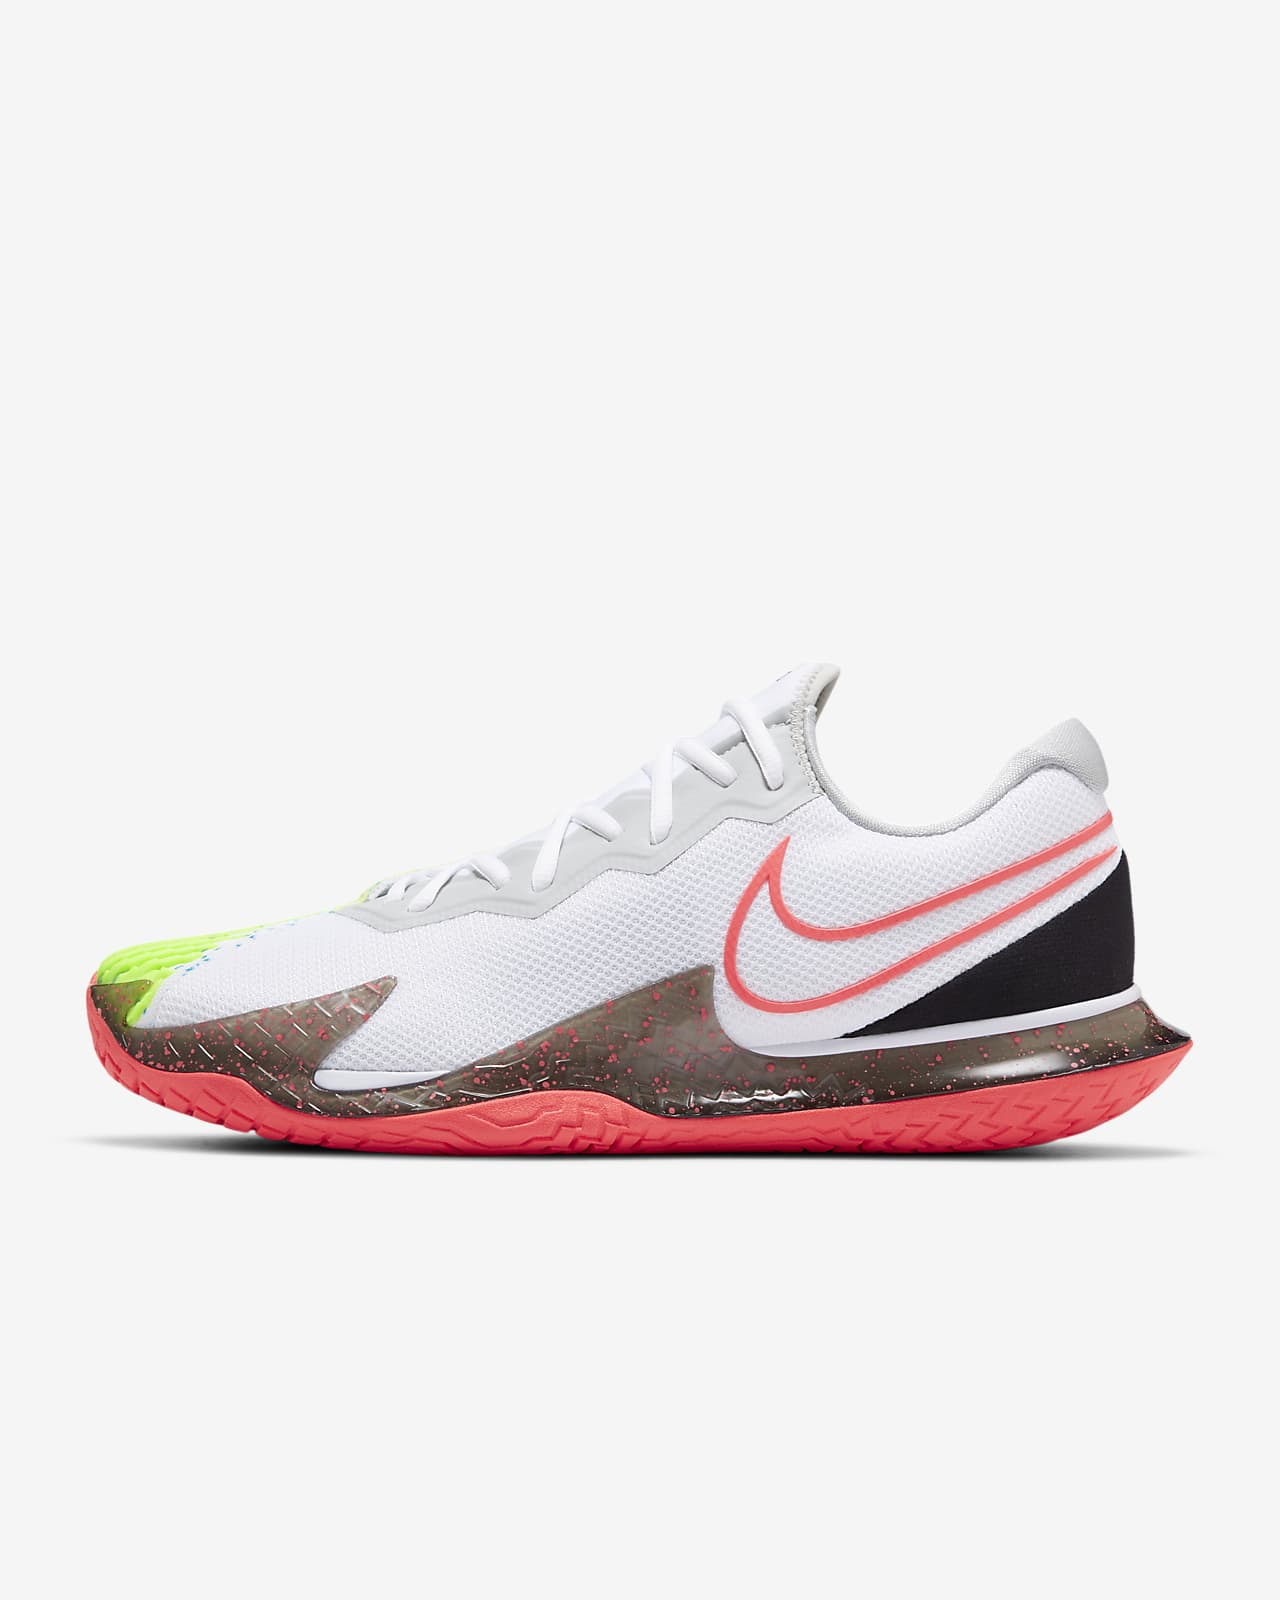 NikeCourt Air Zoom Vapor Cage 4 Men's Hard Court Tennis Shoe